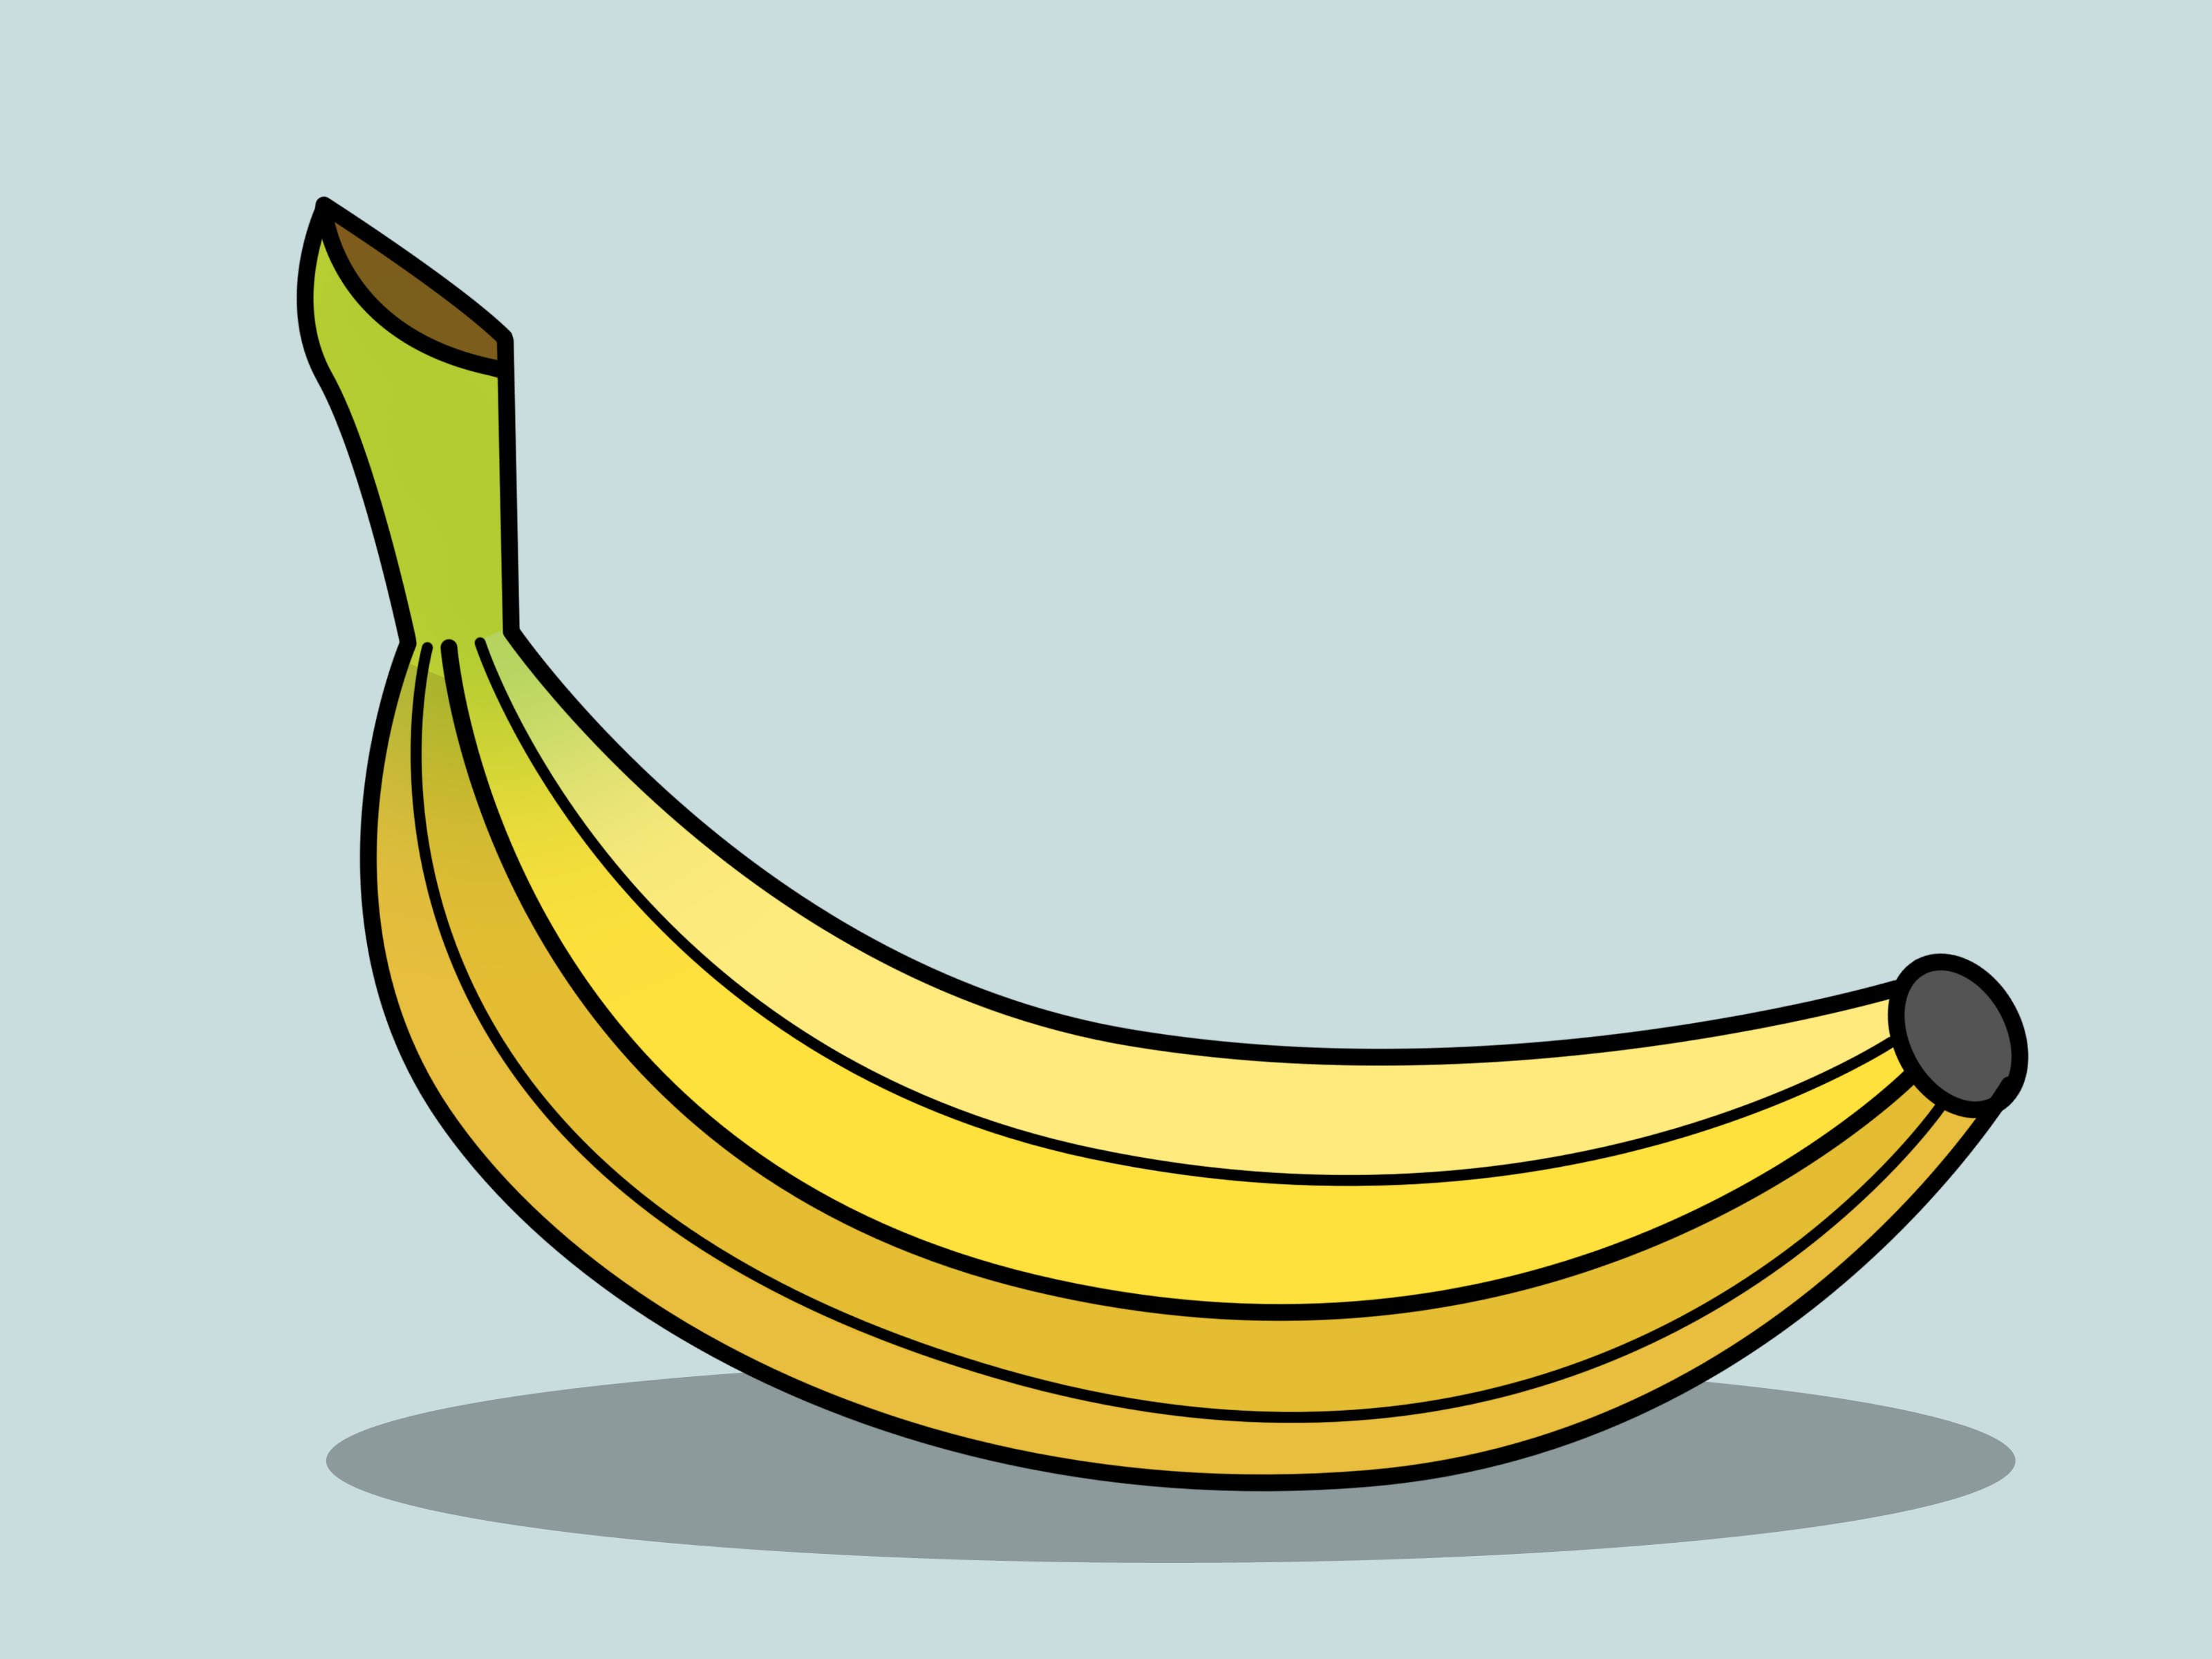 Bananas clipart two.  collection of images